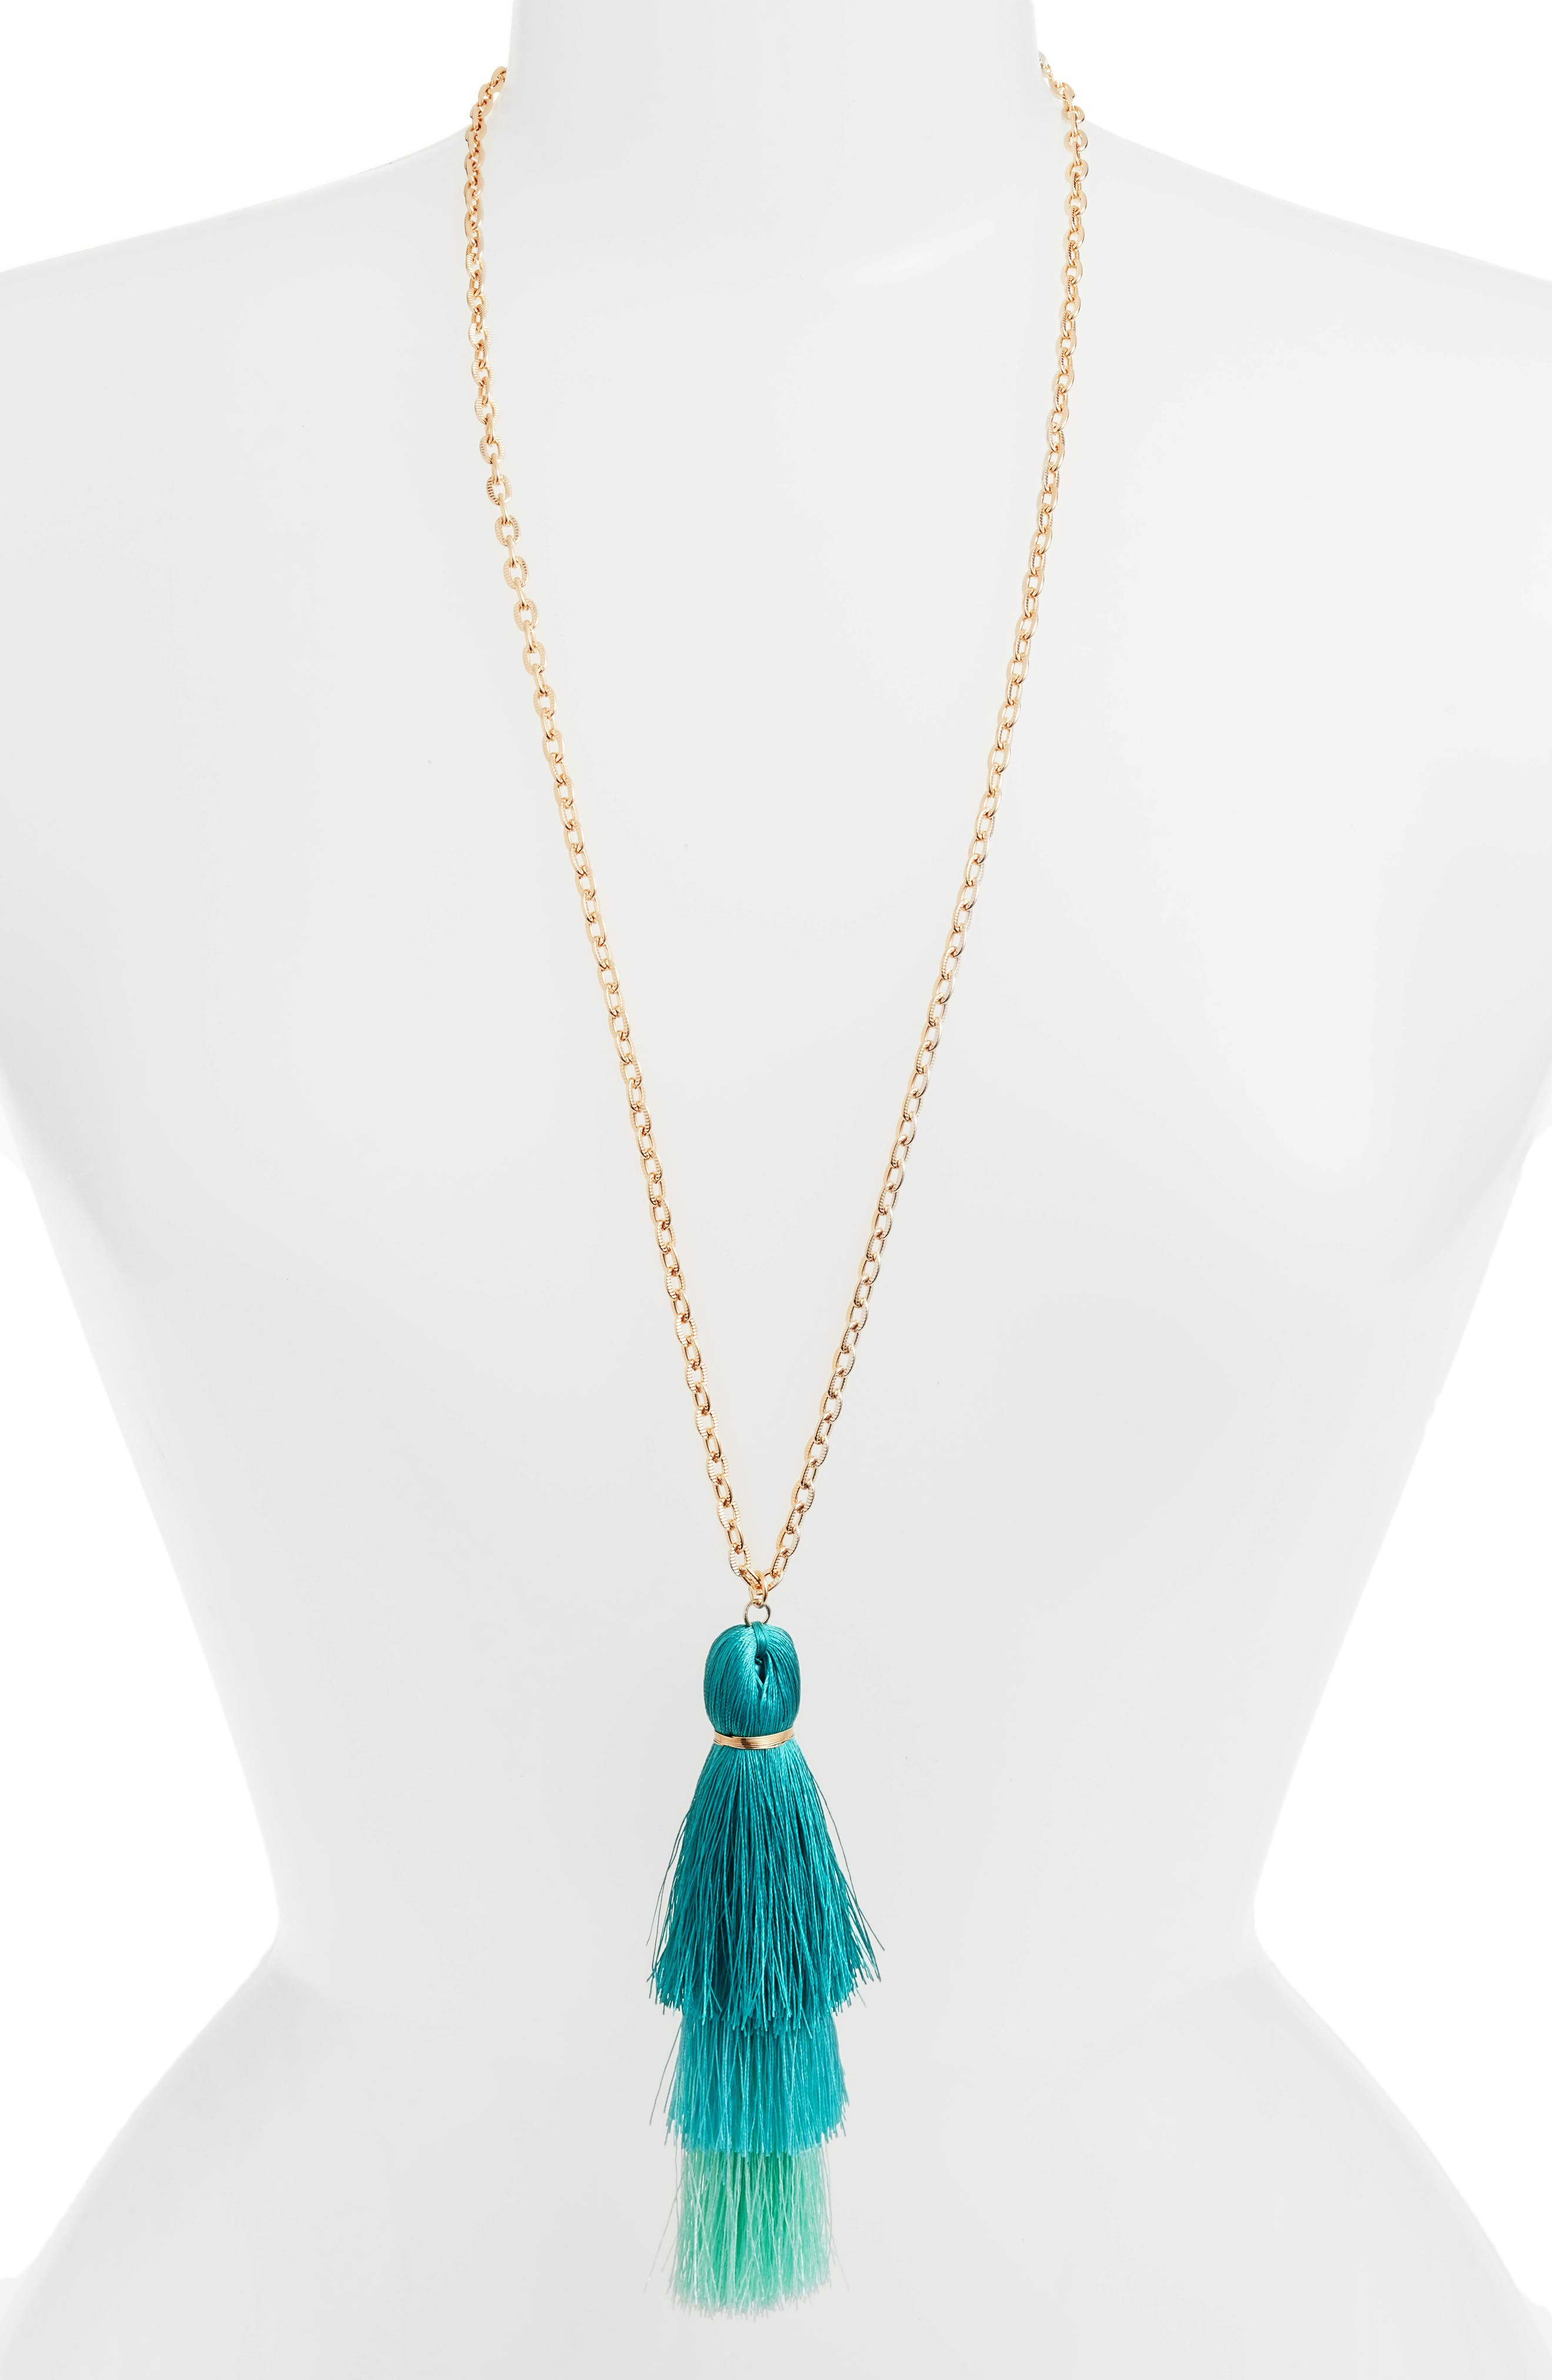 Tiered Tassel Necklace,                         Main,                         color, Gold/ Turquoise